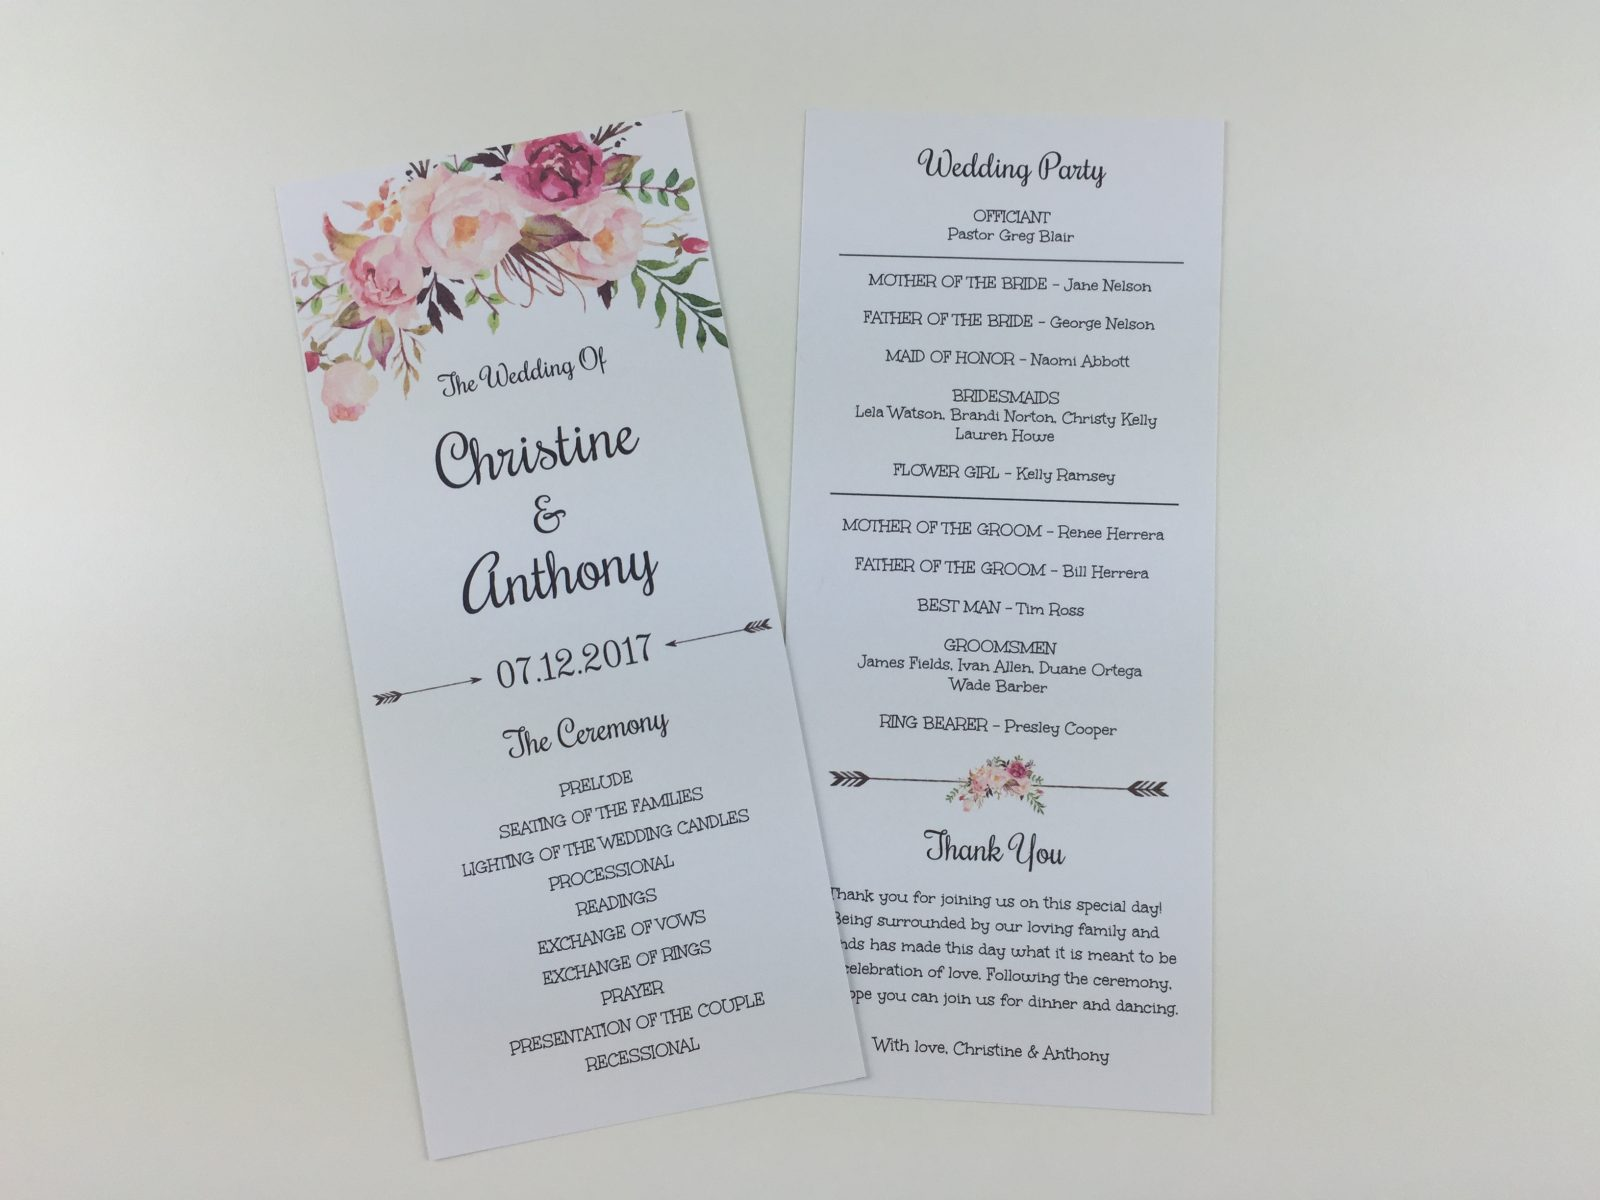 Program template printed on both sides